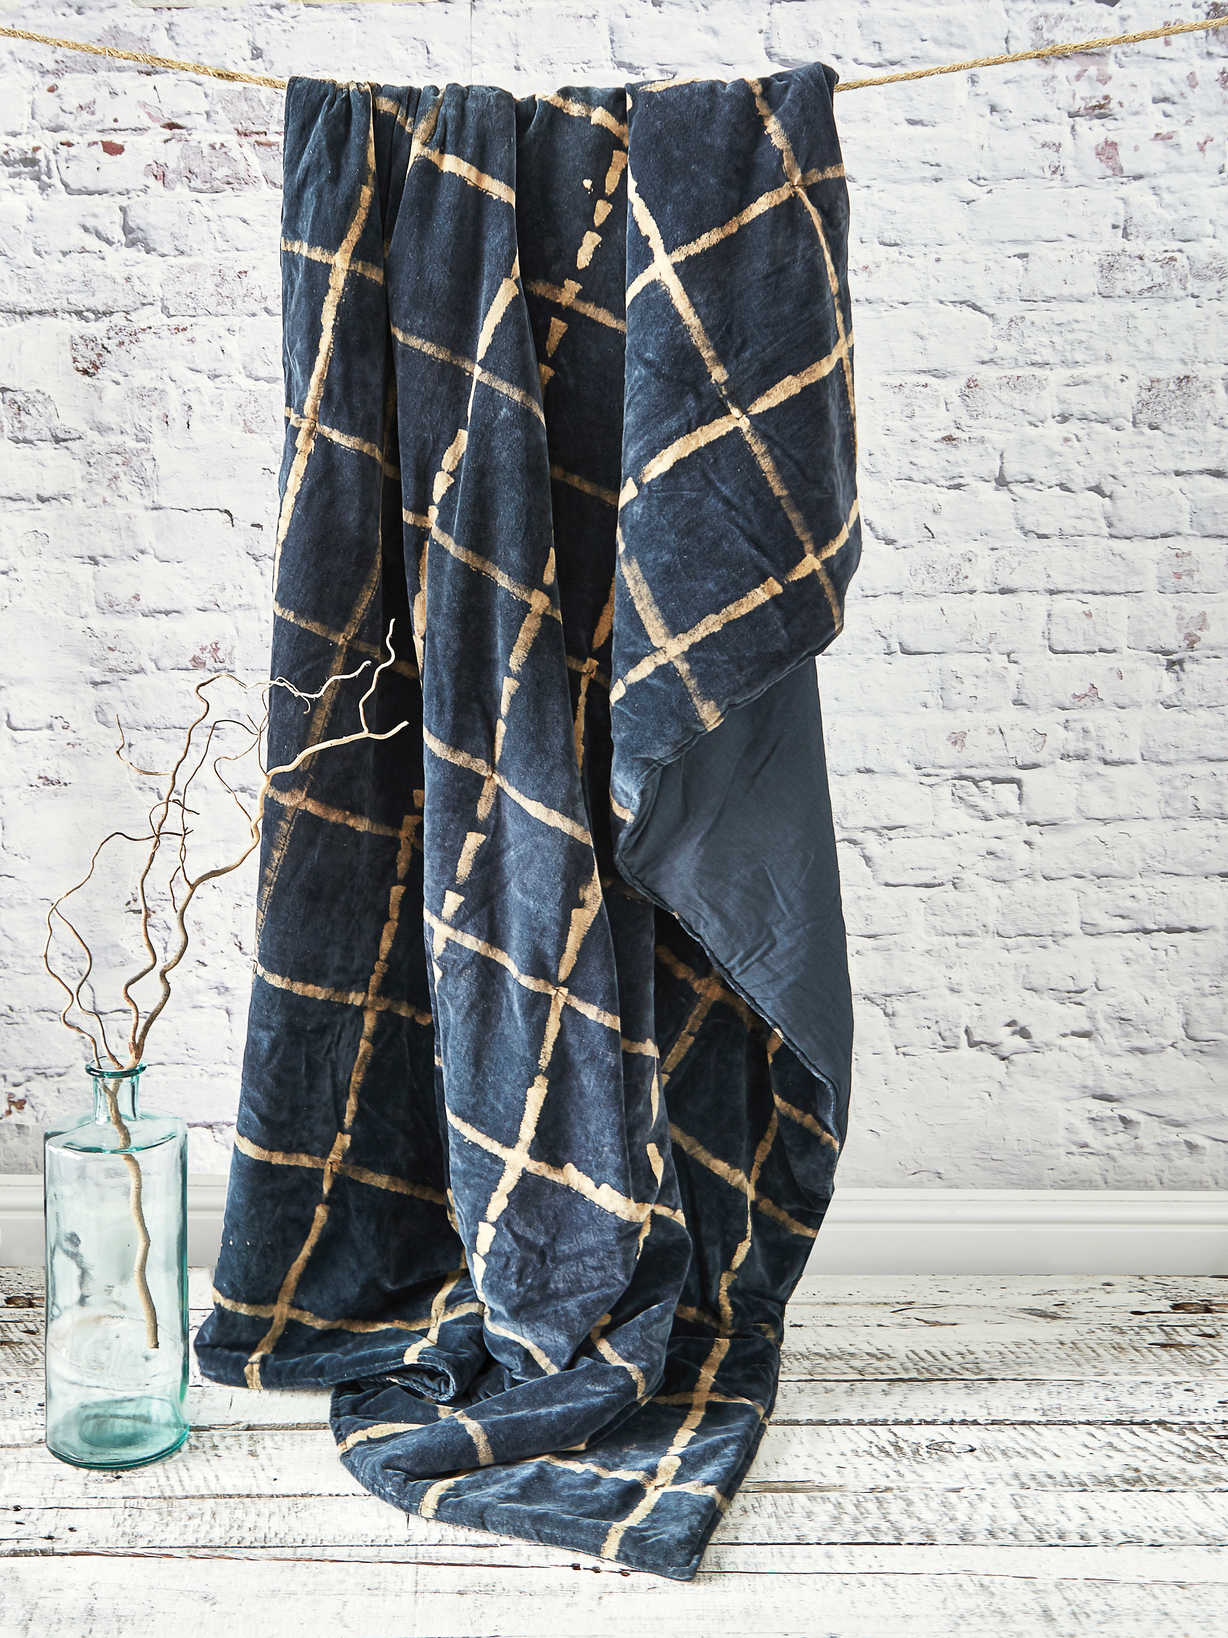 Nordic House Tie-Dyed Velvet Quilted Throw - Midnight Blue